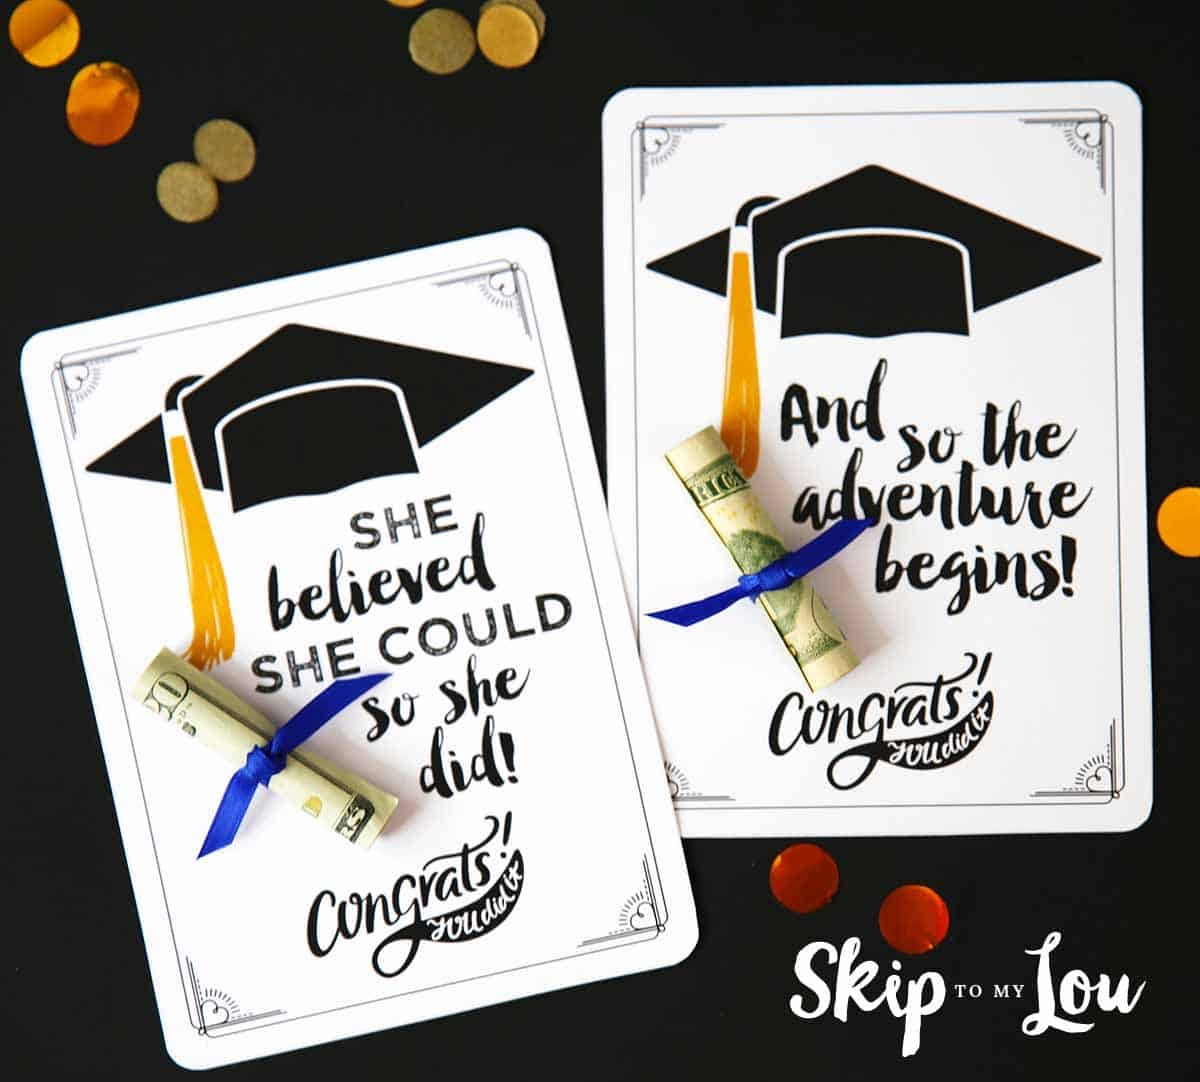 Free Graduation Cards With Positive Quotes And Cash! - Free Printable Graduation Cards 2018